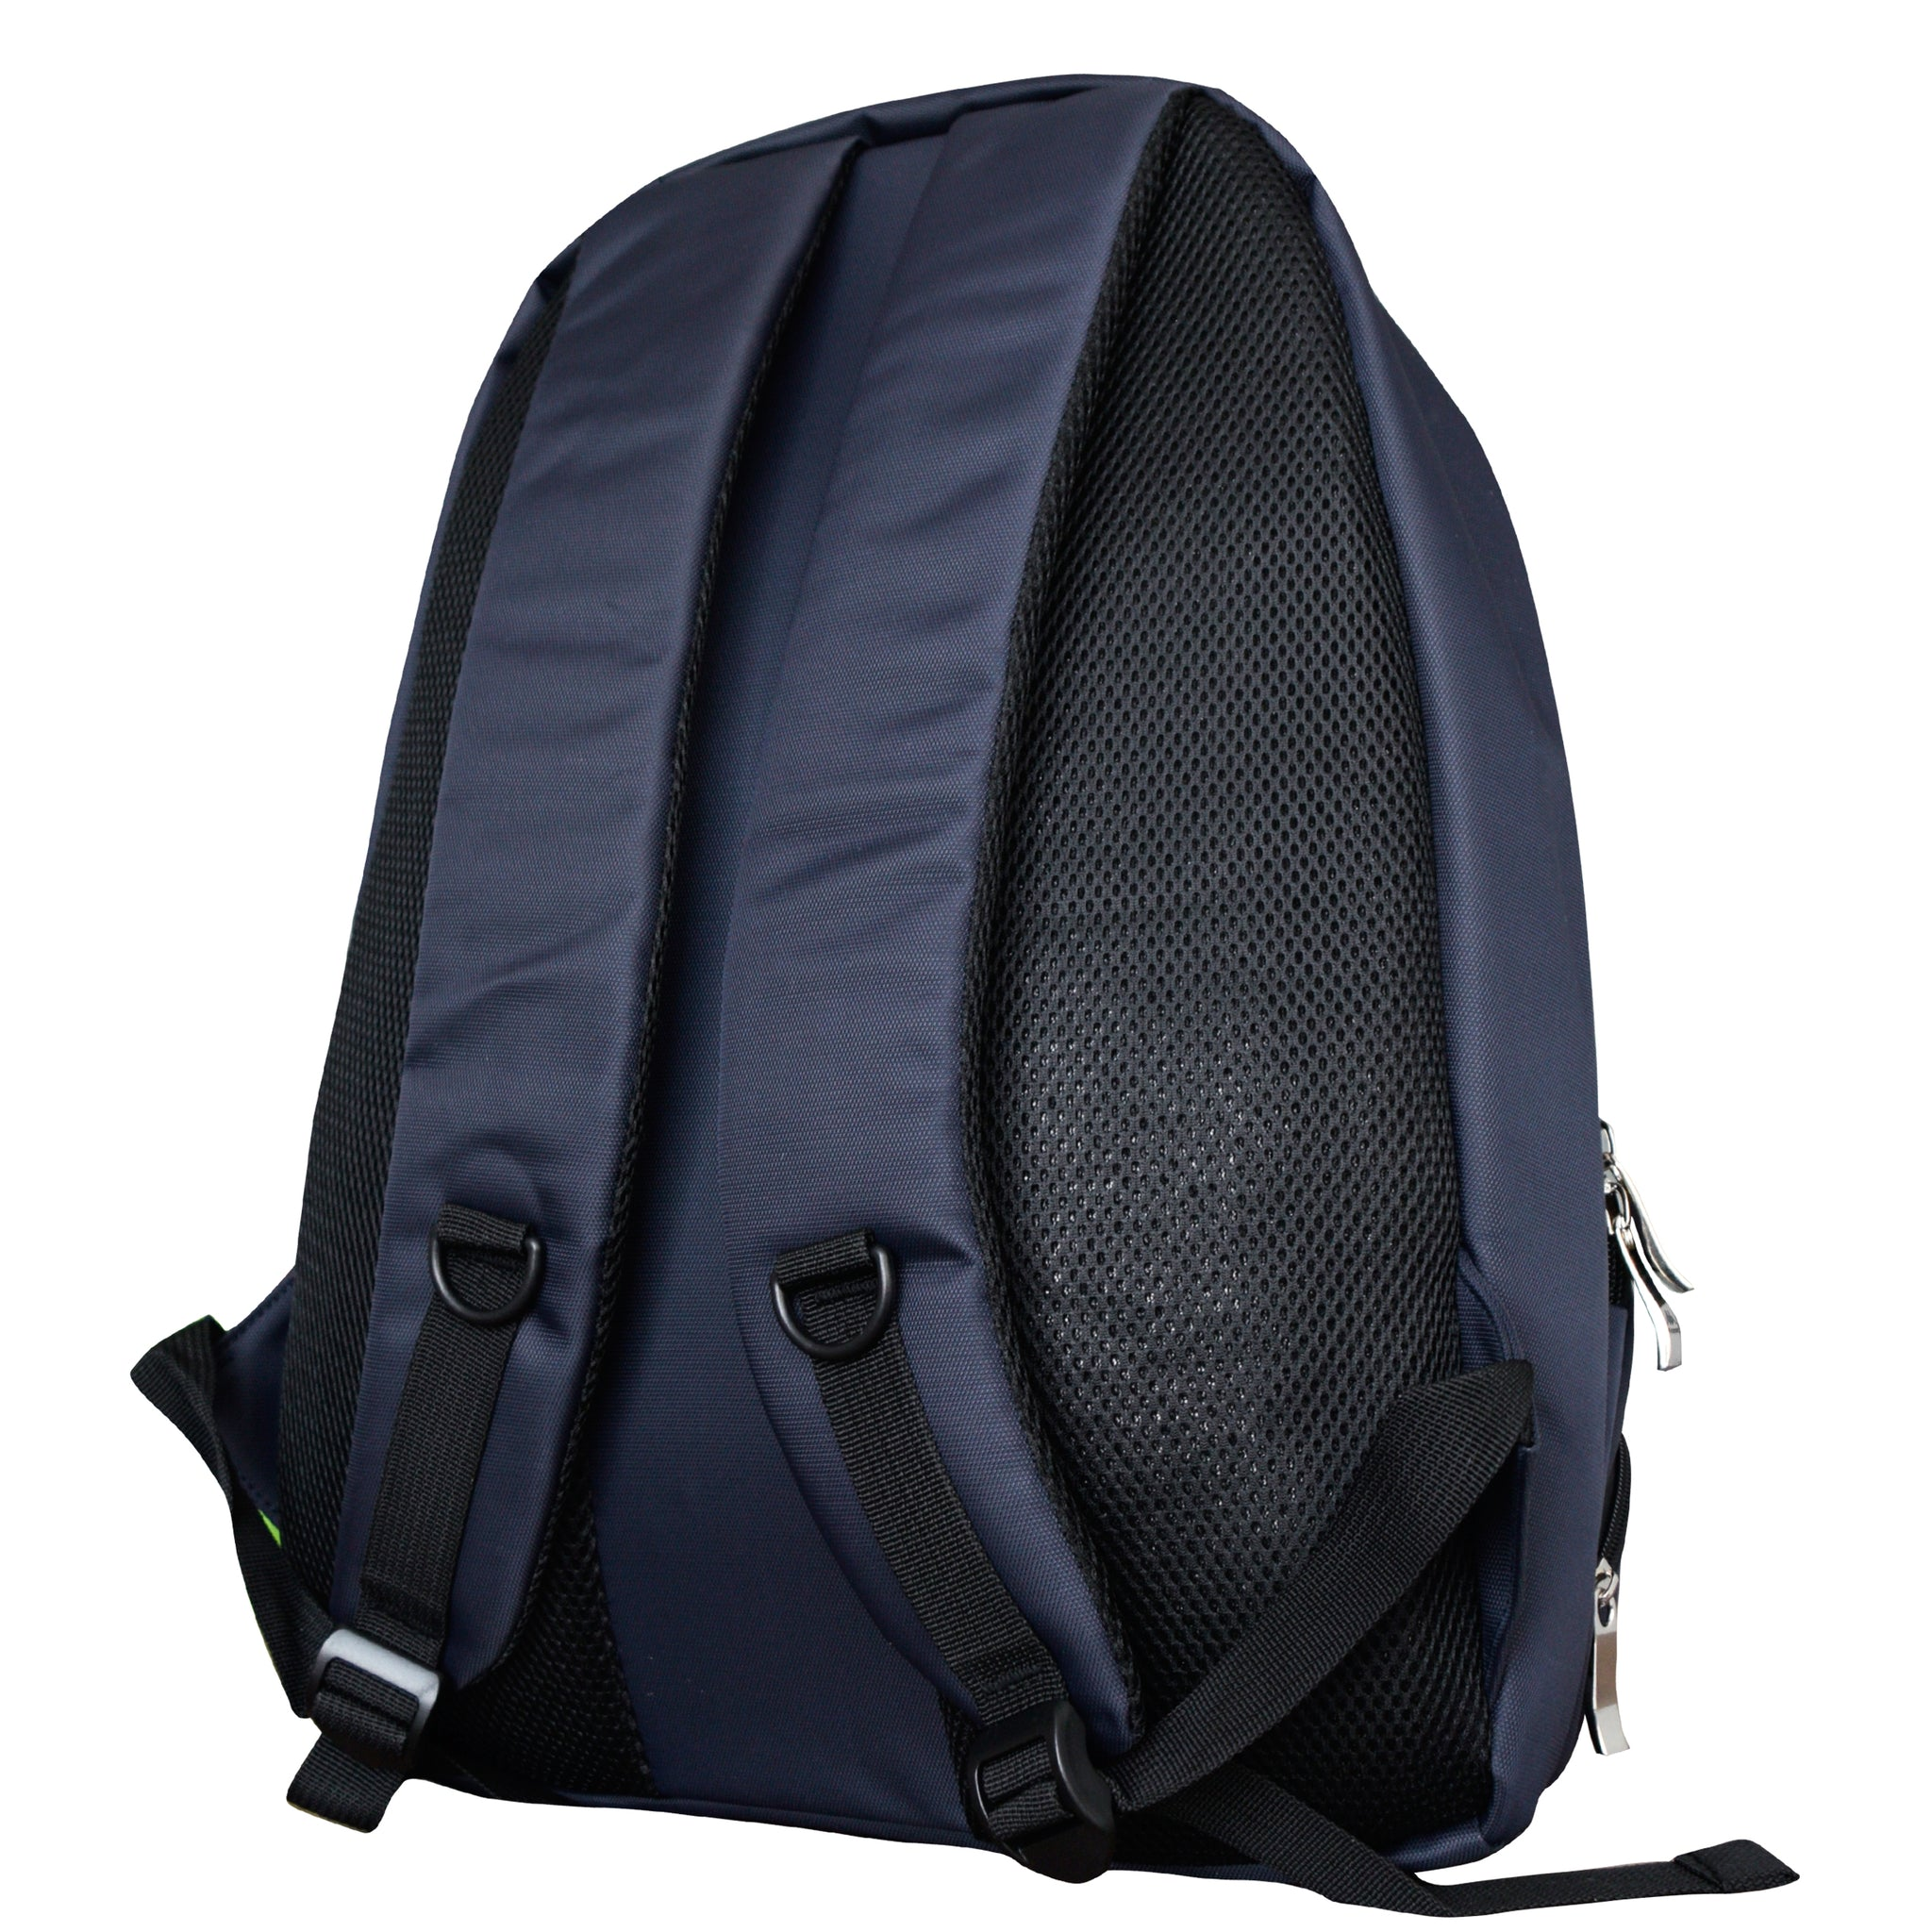 BackPack Lifestyle PLG002-3